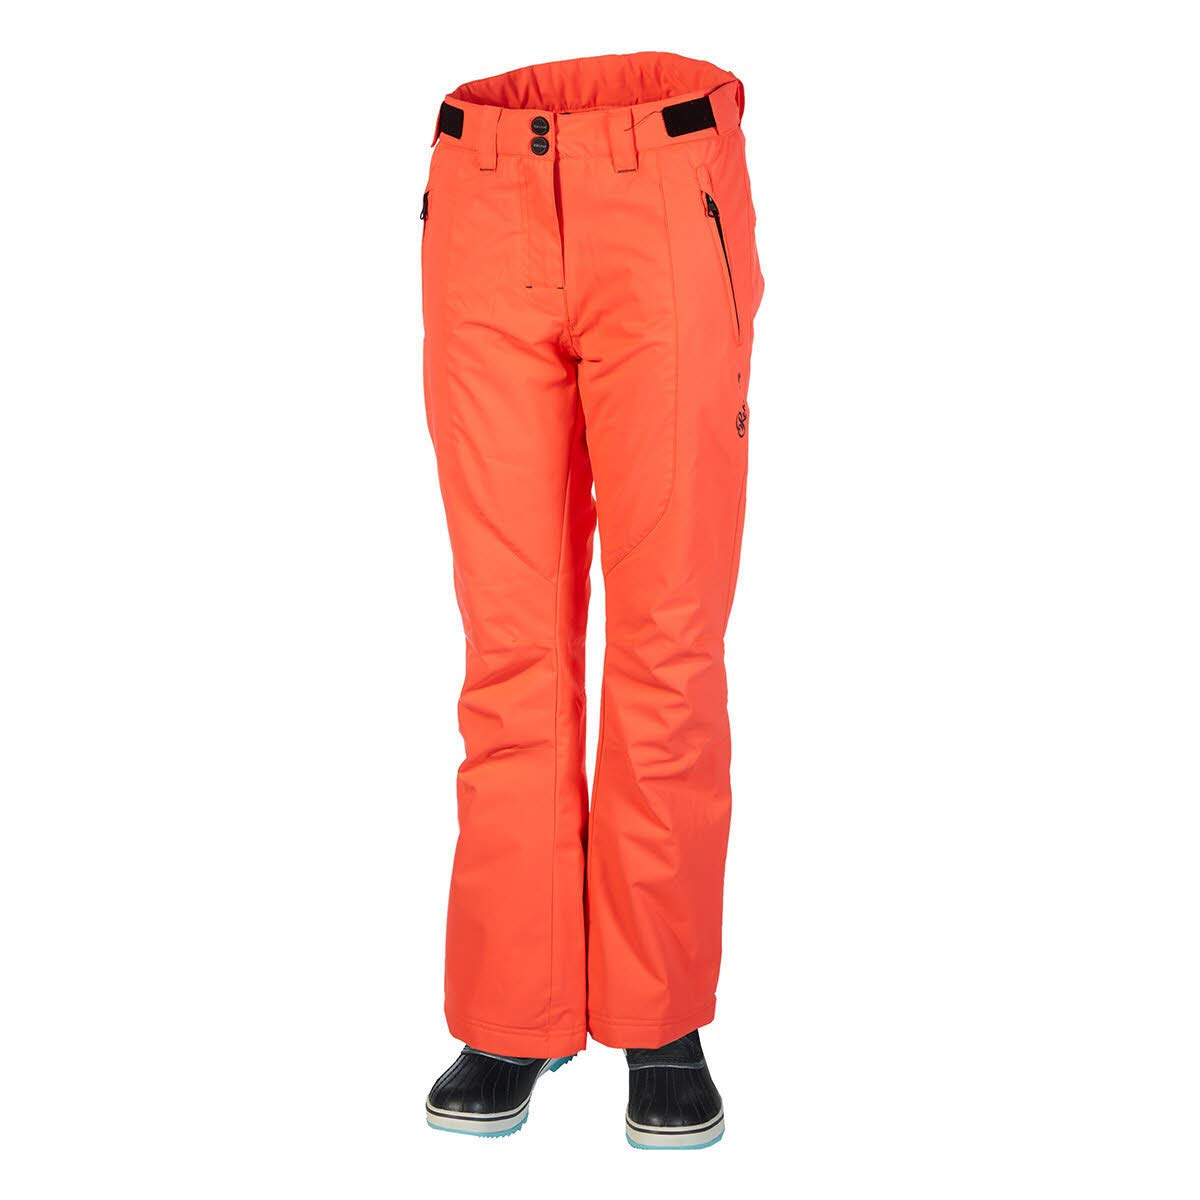 Rehall Milly-R Snowpant Womens - M Rehall outerwear